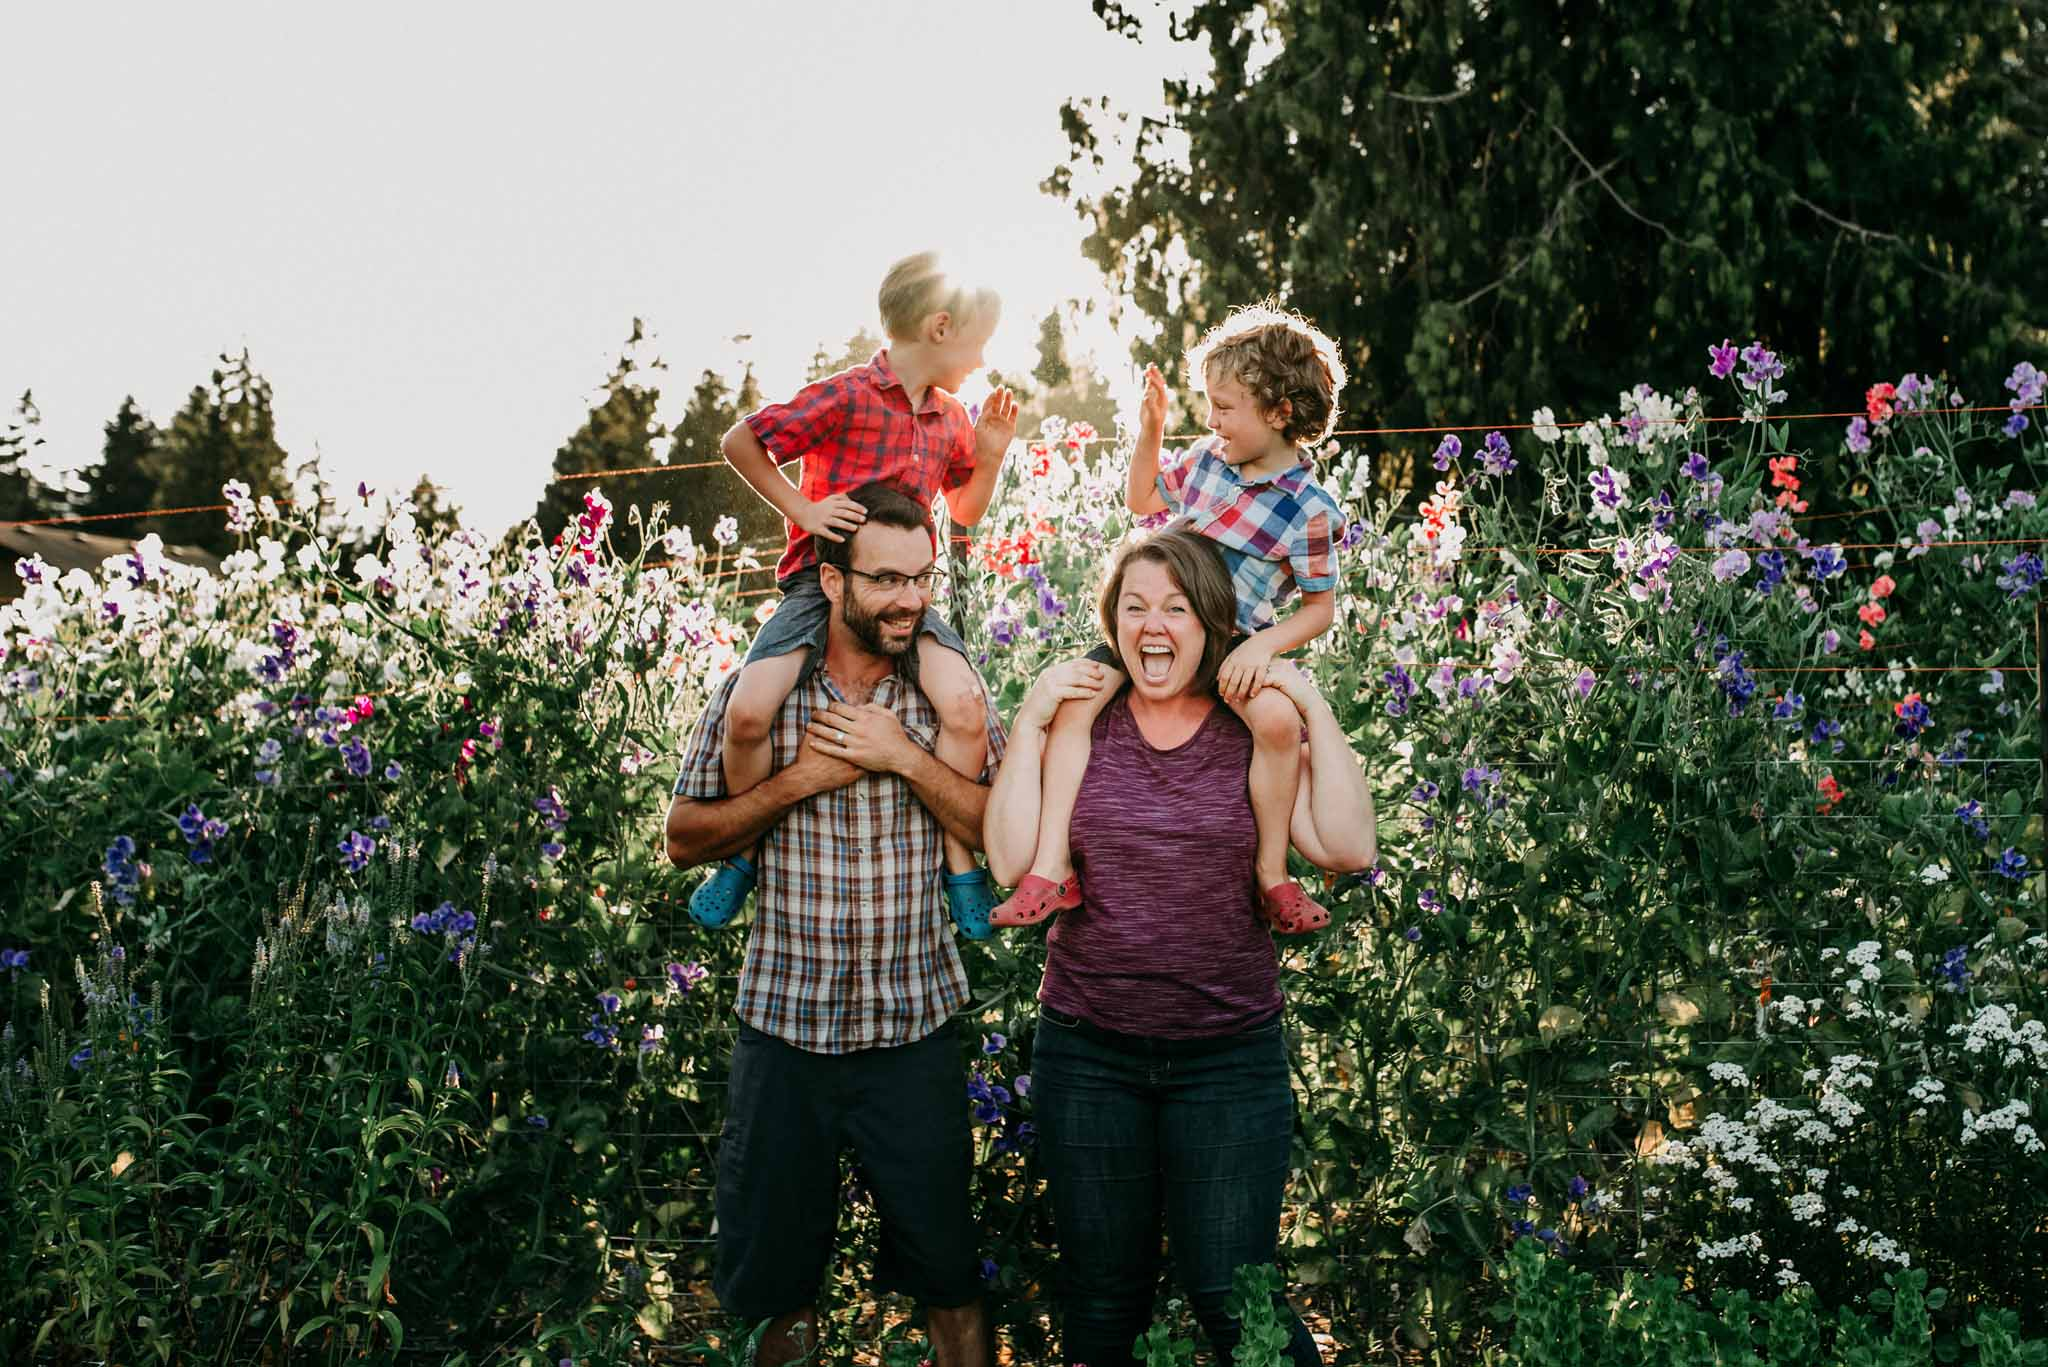 Sustainable Growth - With twins baby boys in the wagon beside her, Adria continued to grow Little Bee Blooms from her garden. As the boys grew older the business expanded to suit the needs of their family. Blooms are now grown to create beautiful sustainable weddings flowers and sell to local florists and at farmers markets, all while still maintaining their little farm stand.